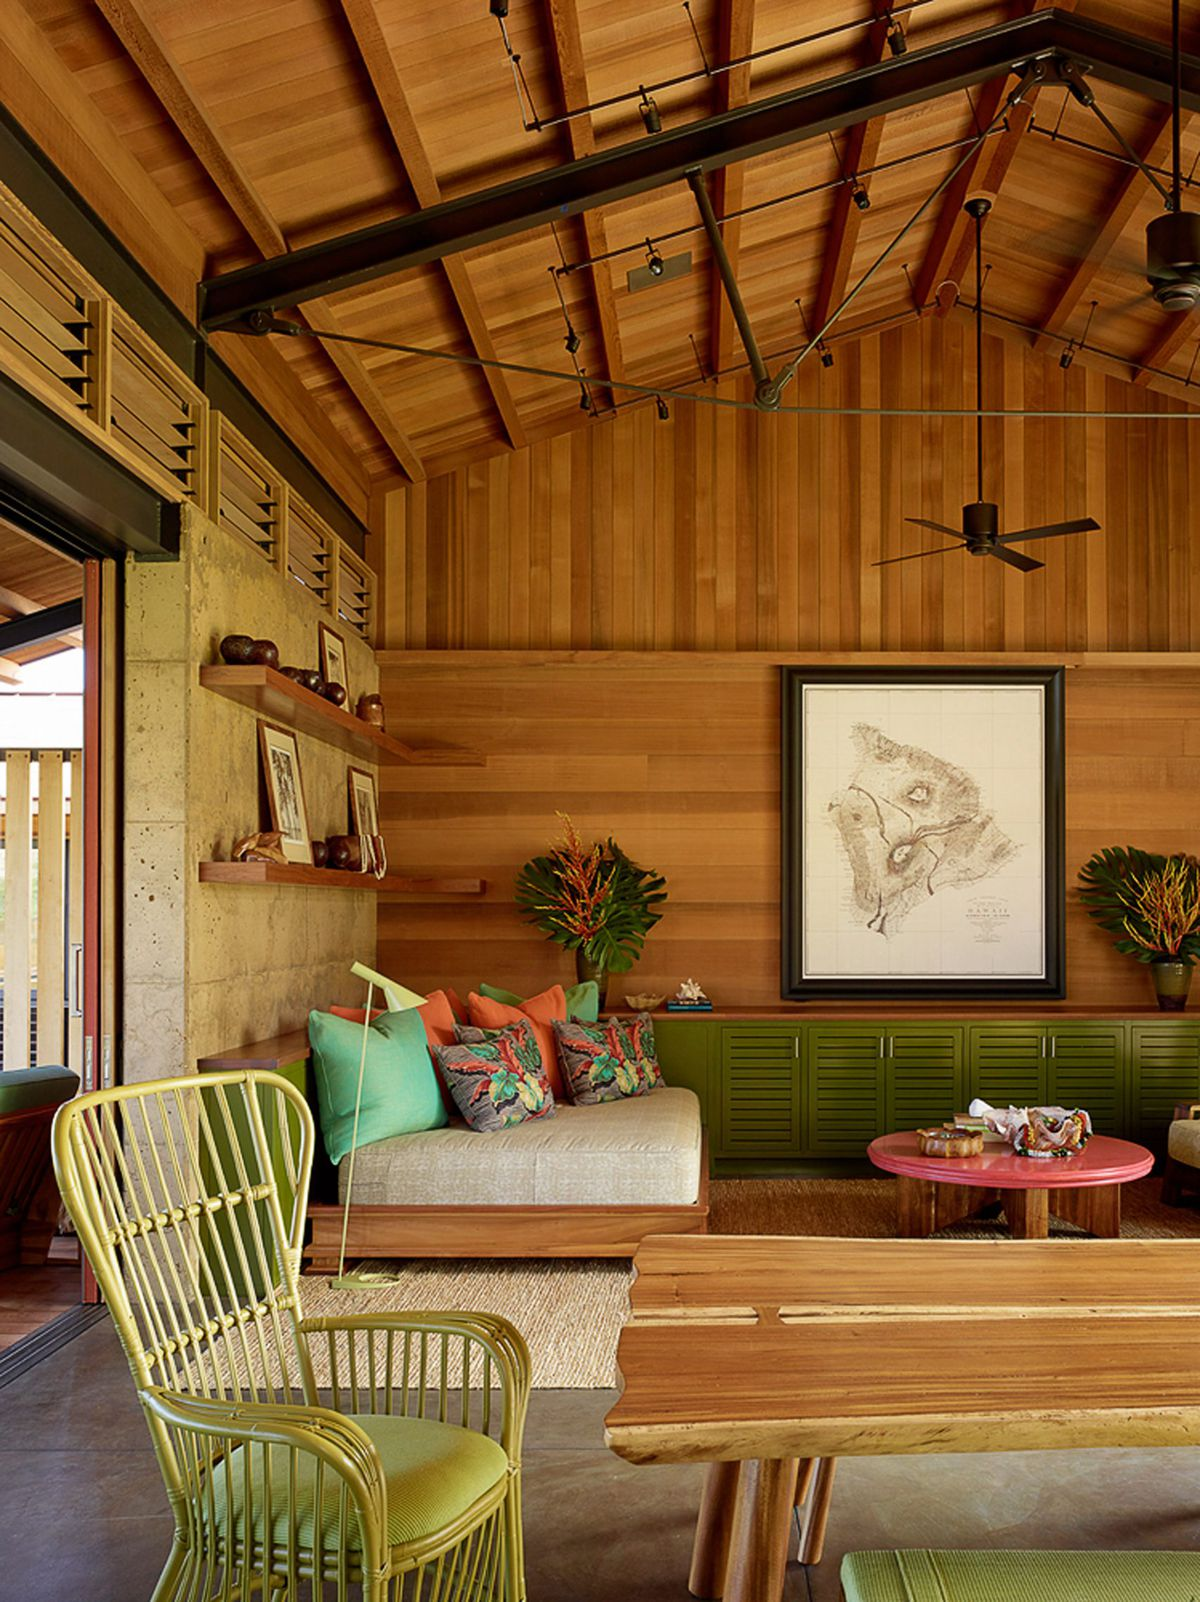 The property also has its own tiki bar dining cabana and pool area the nearby master suite features its own private outdoor area